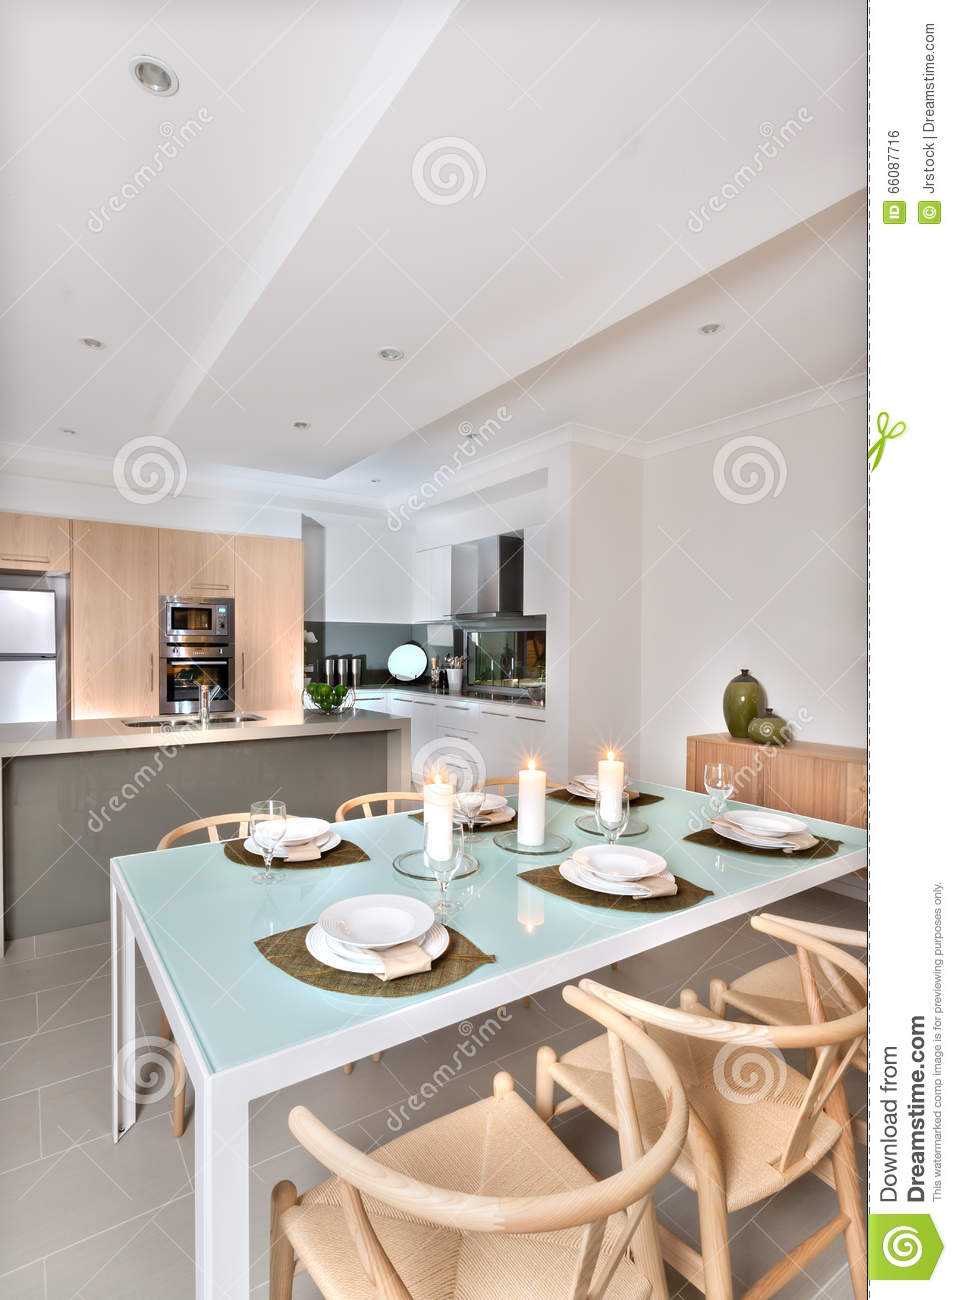 Modern Dining Room Setup With Candles Flashing In Front Of The Kitchen